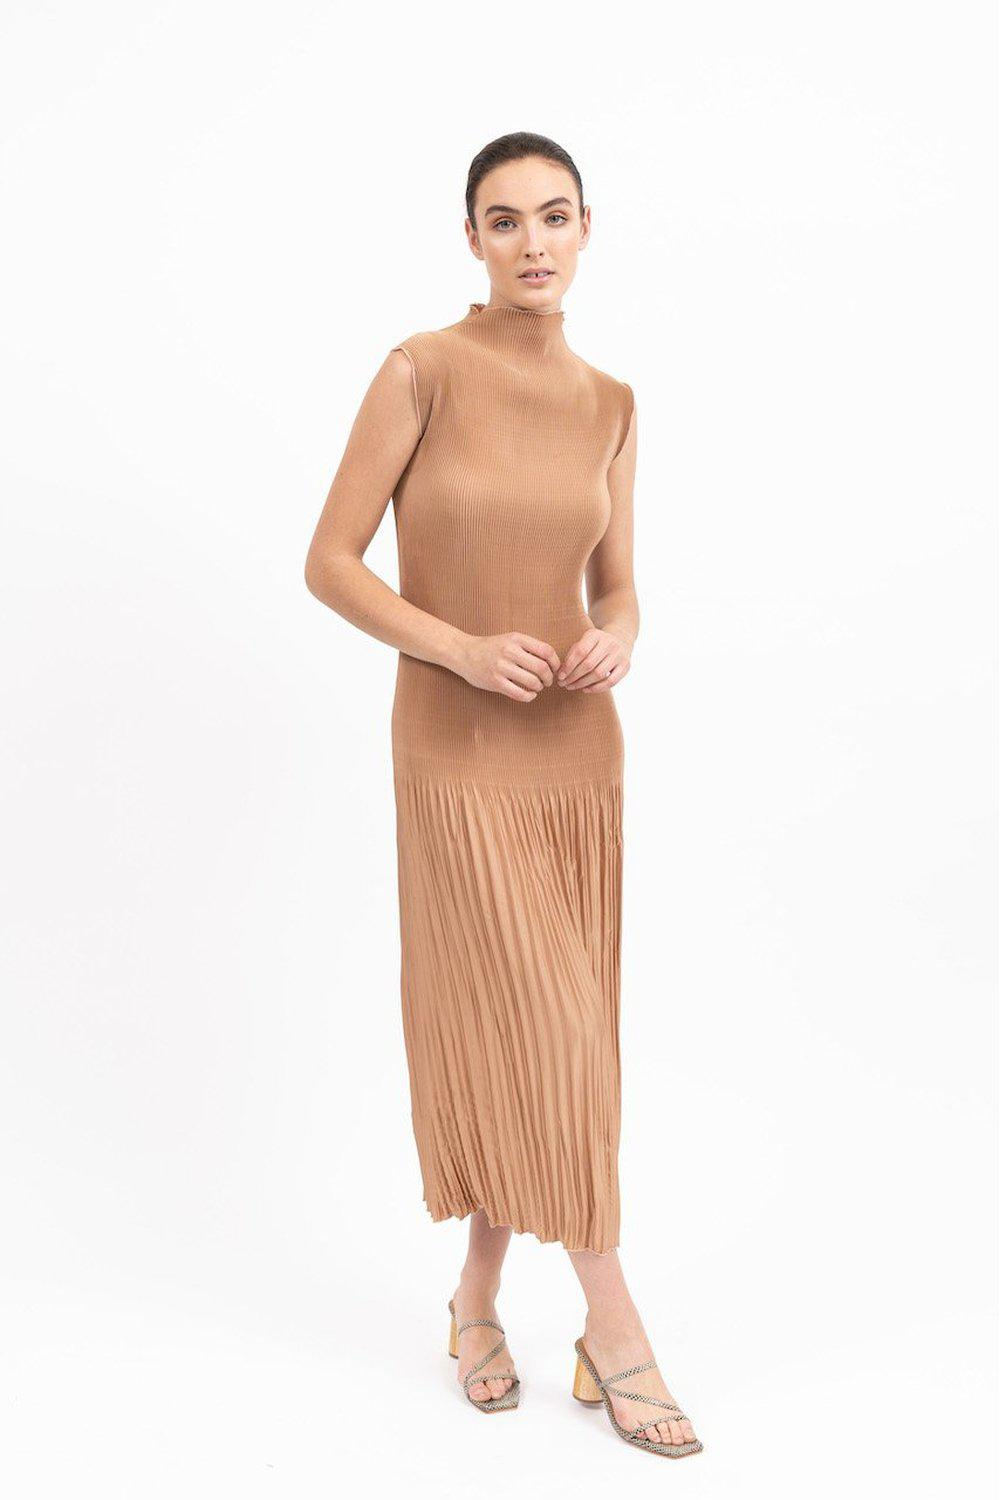 Soirèe Pleat Gown / Caramel | L'idèe | Mad About The Boy